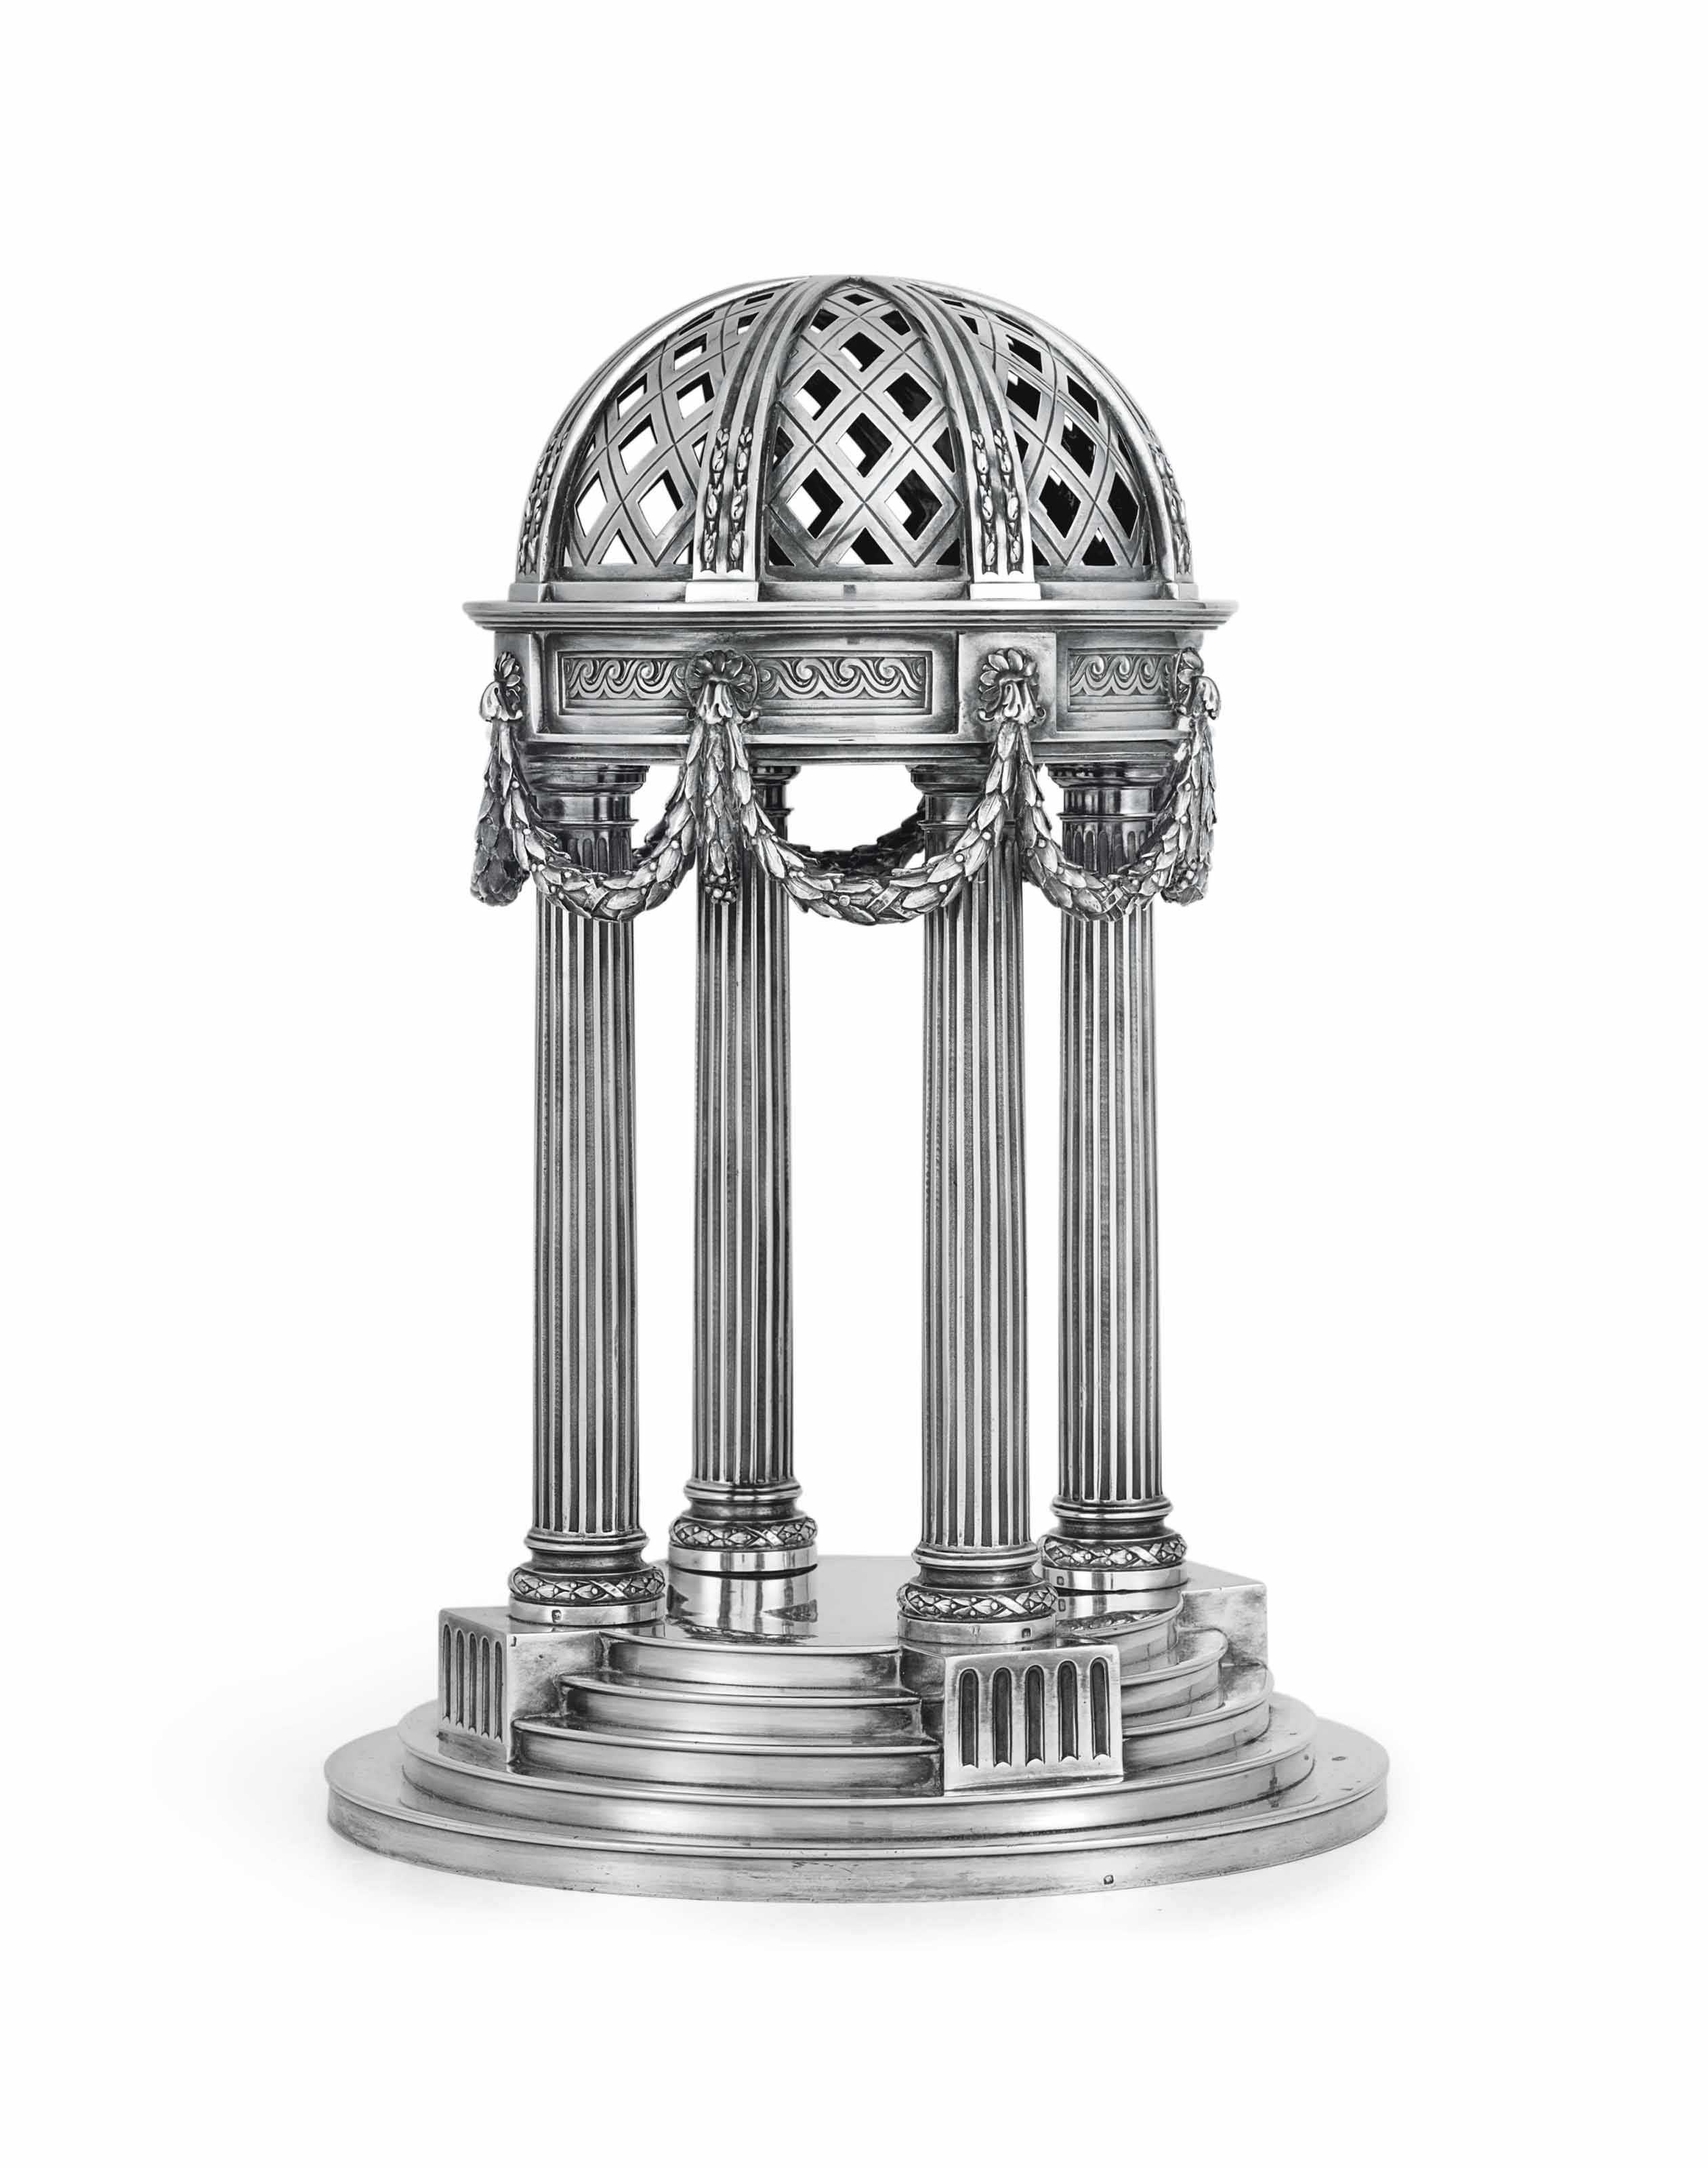 A FRENCH SILVER COLONNADE CENTERPIECE